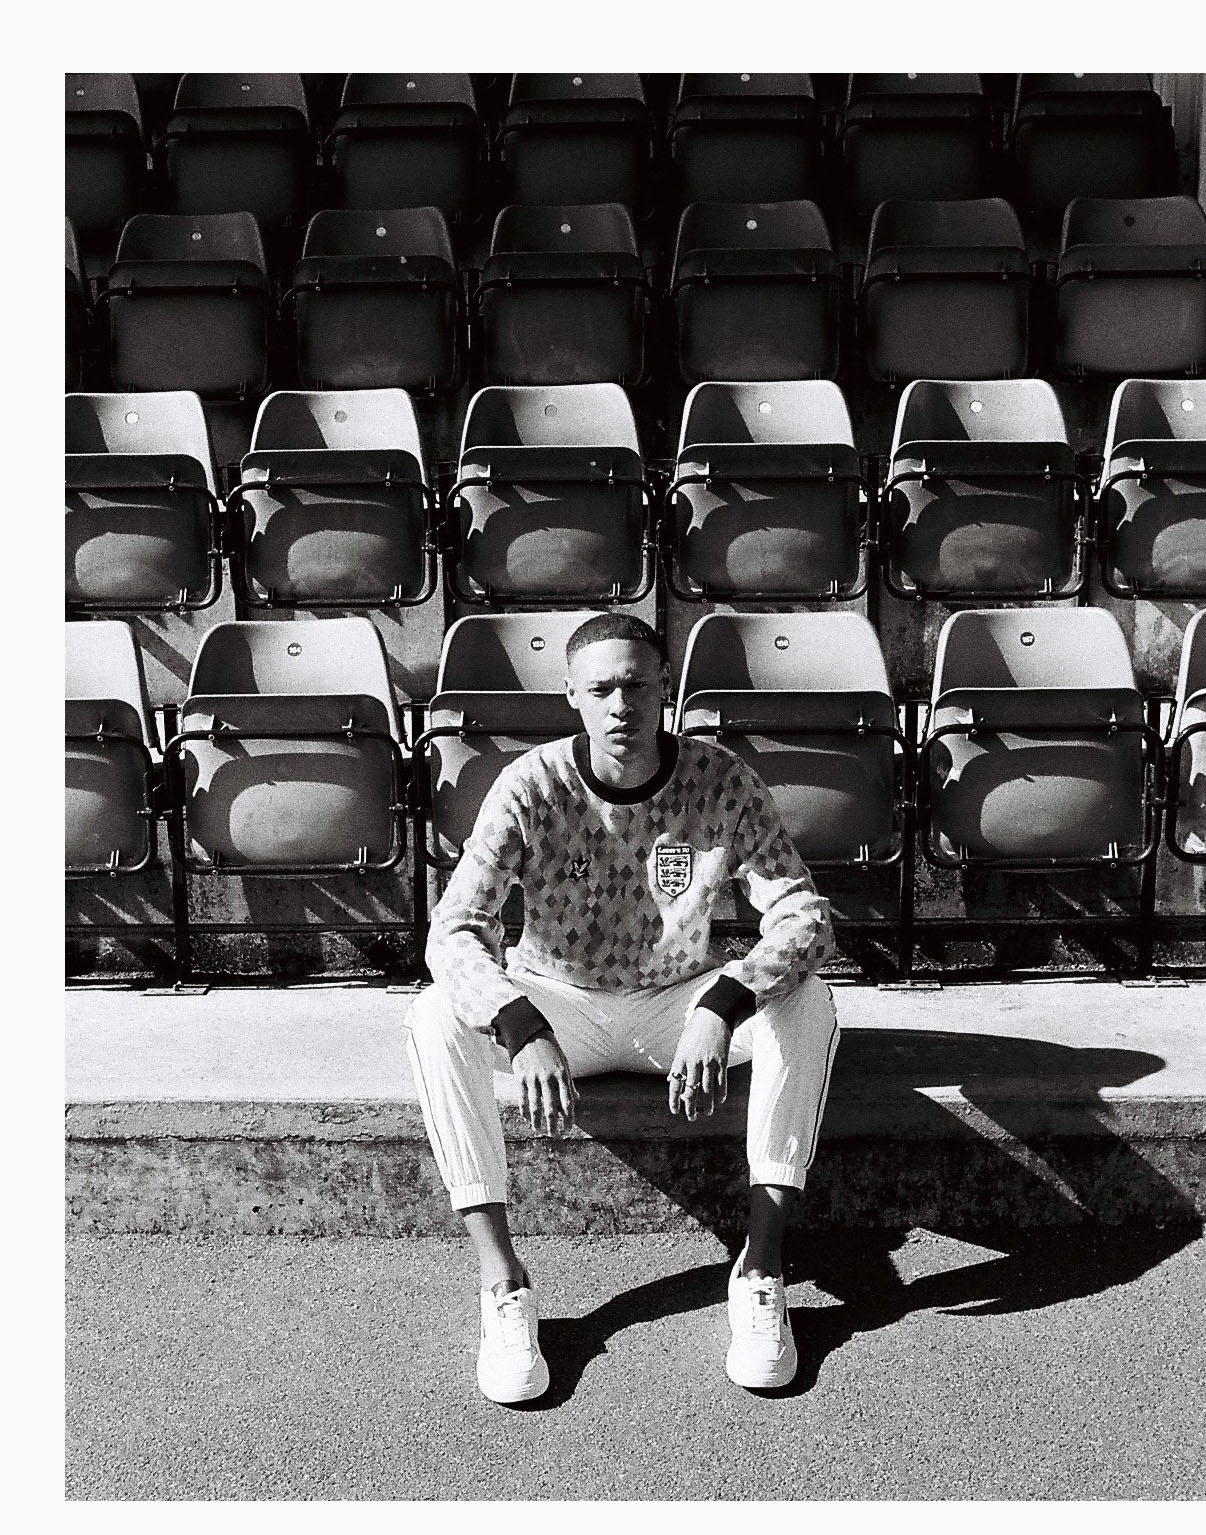 Lad in Neal on step of  stadium by lifestyle photographer Tim Cole